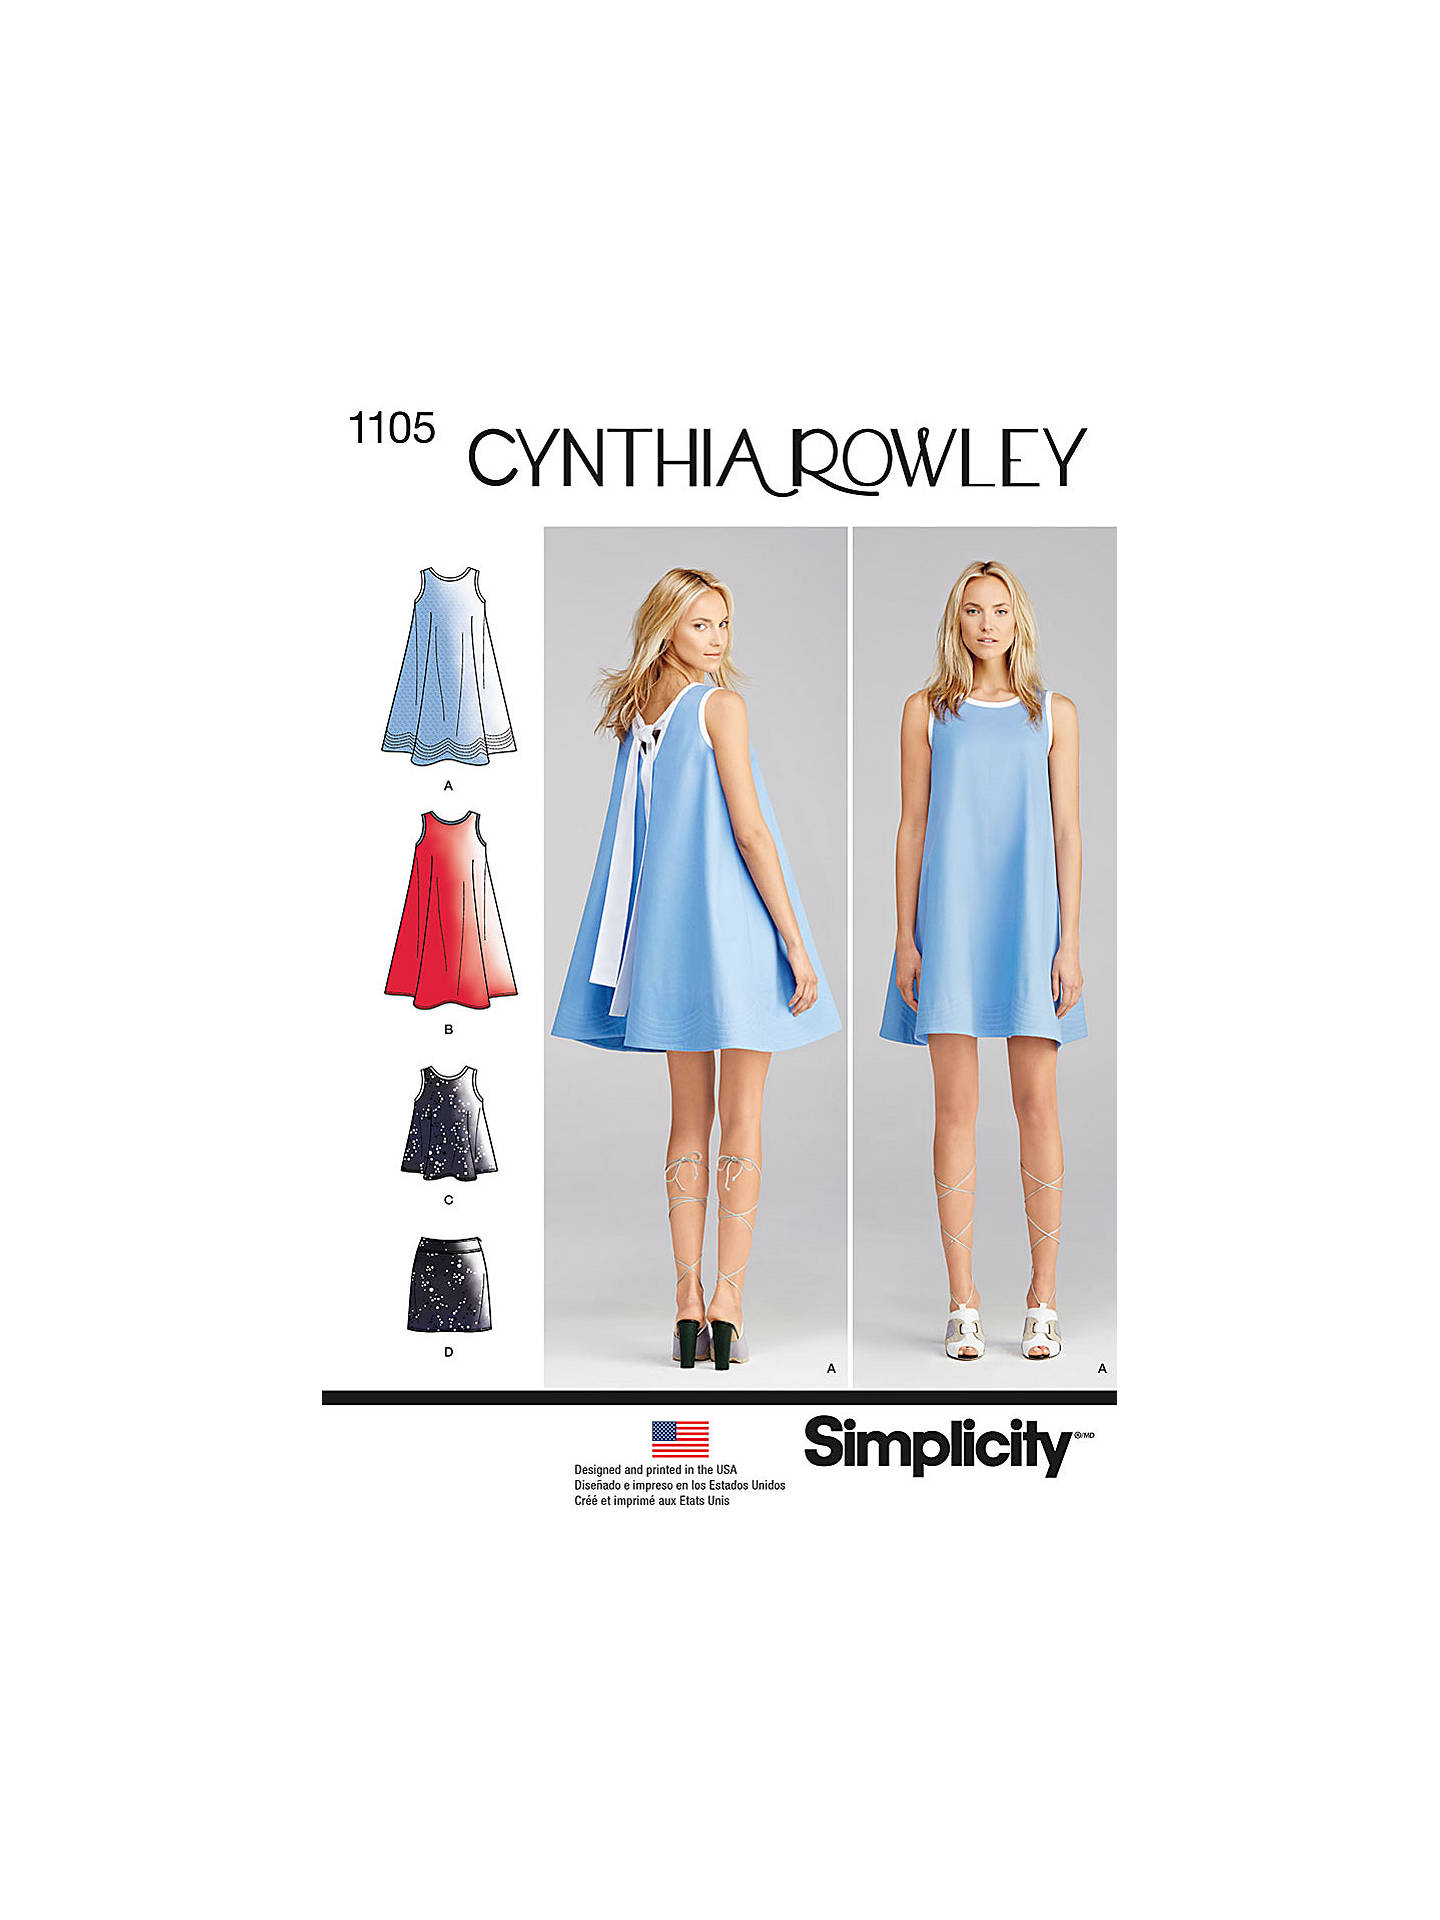 Simplicity By Cynthia Rowley Women S Sleeveless A Line Dress Top And Mini Skirt Sewing